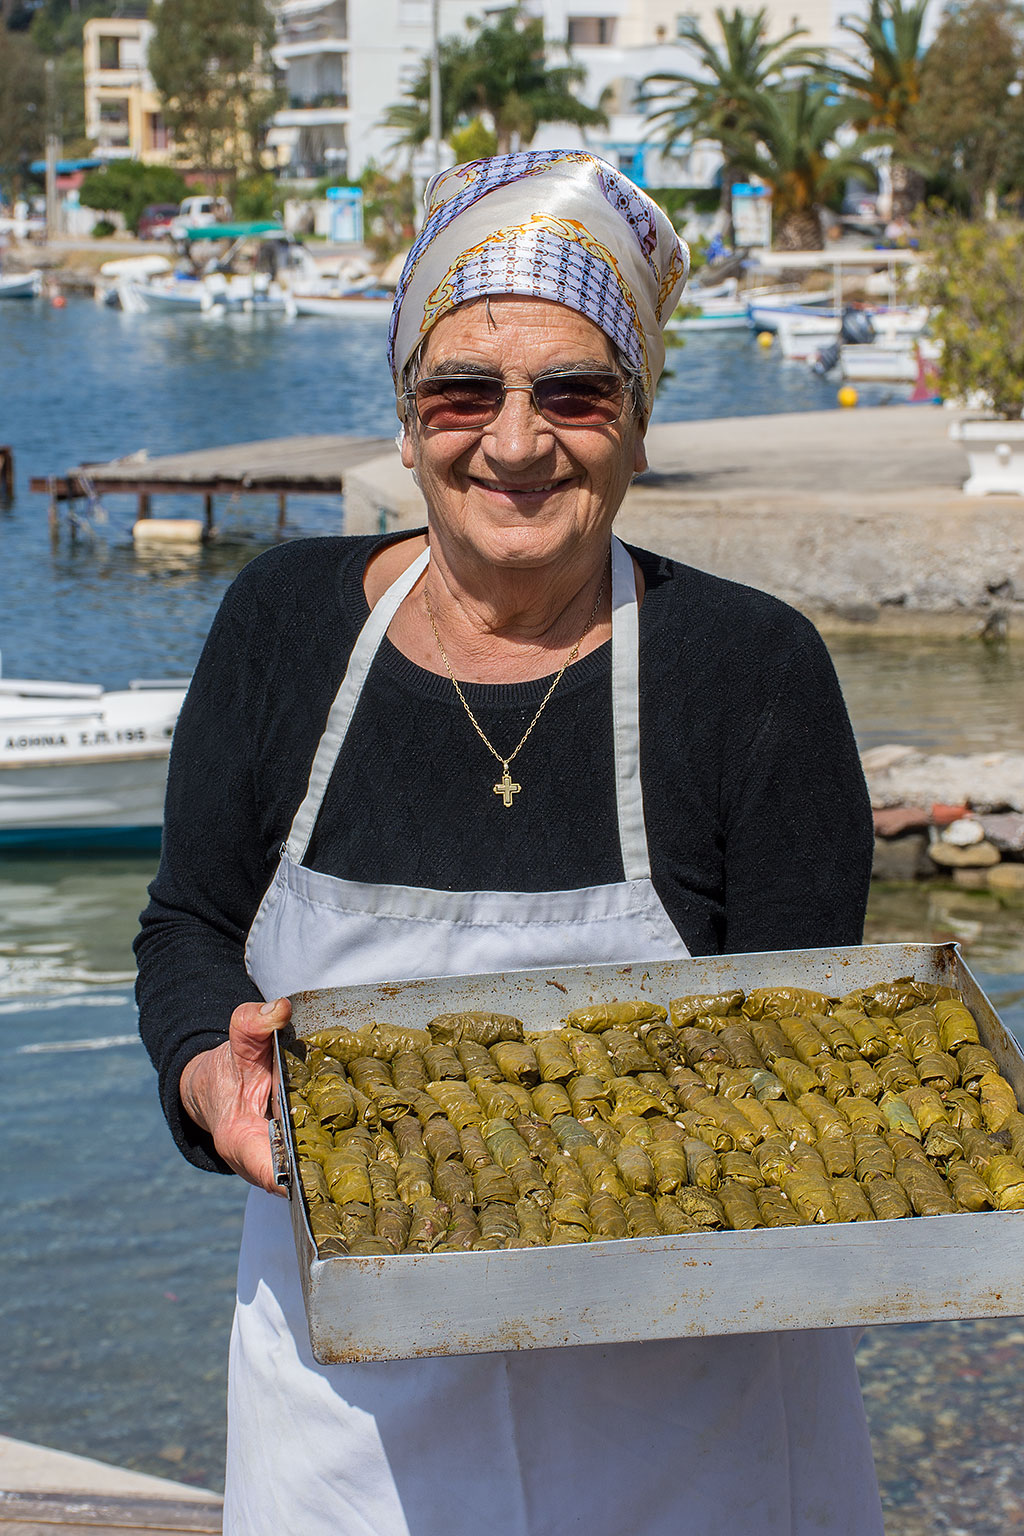 Enormous amounts of Greek Dolmades